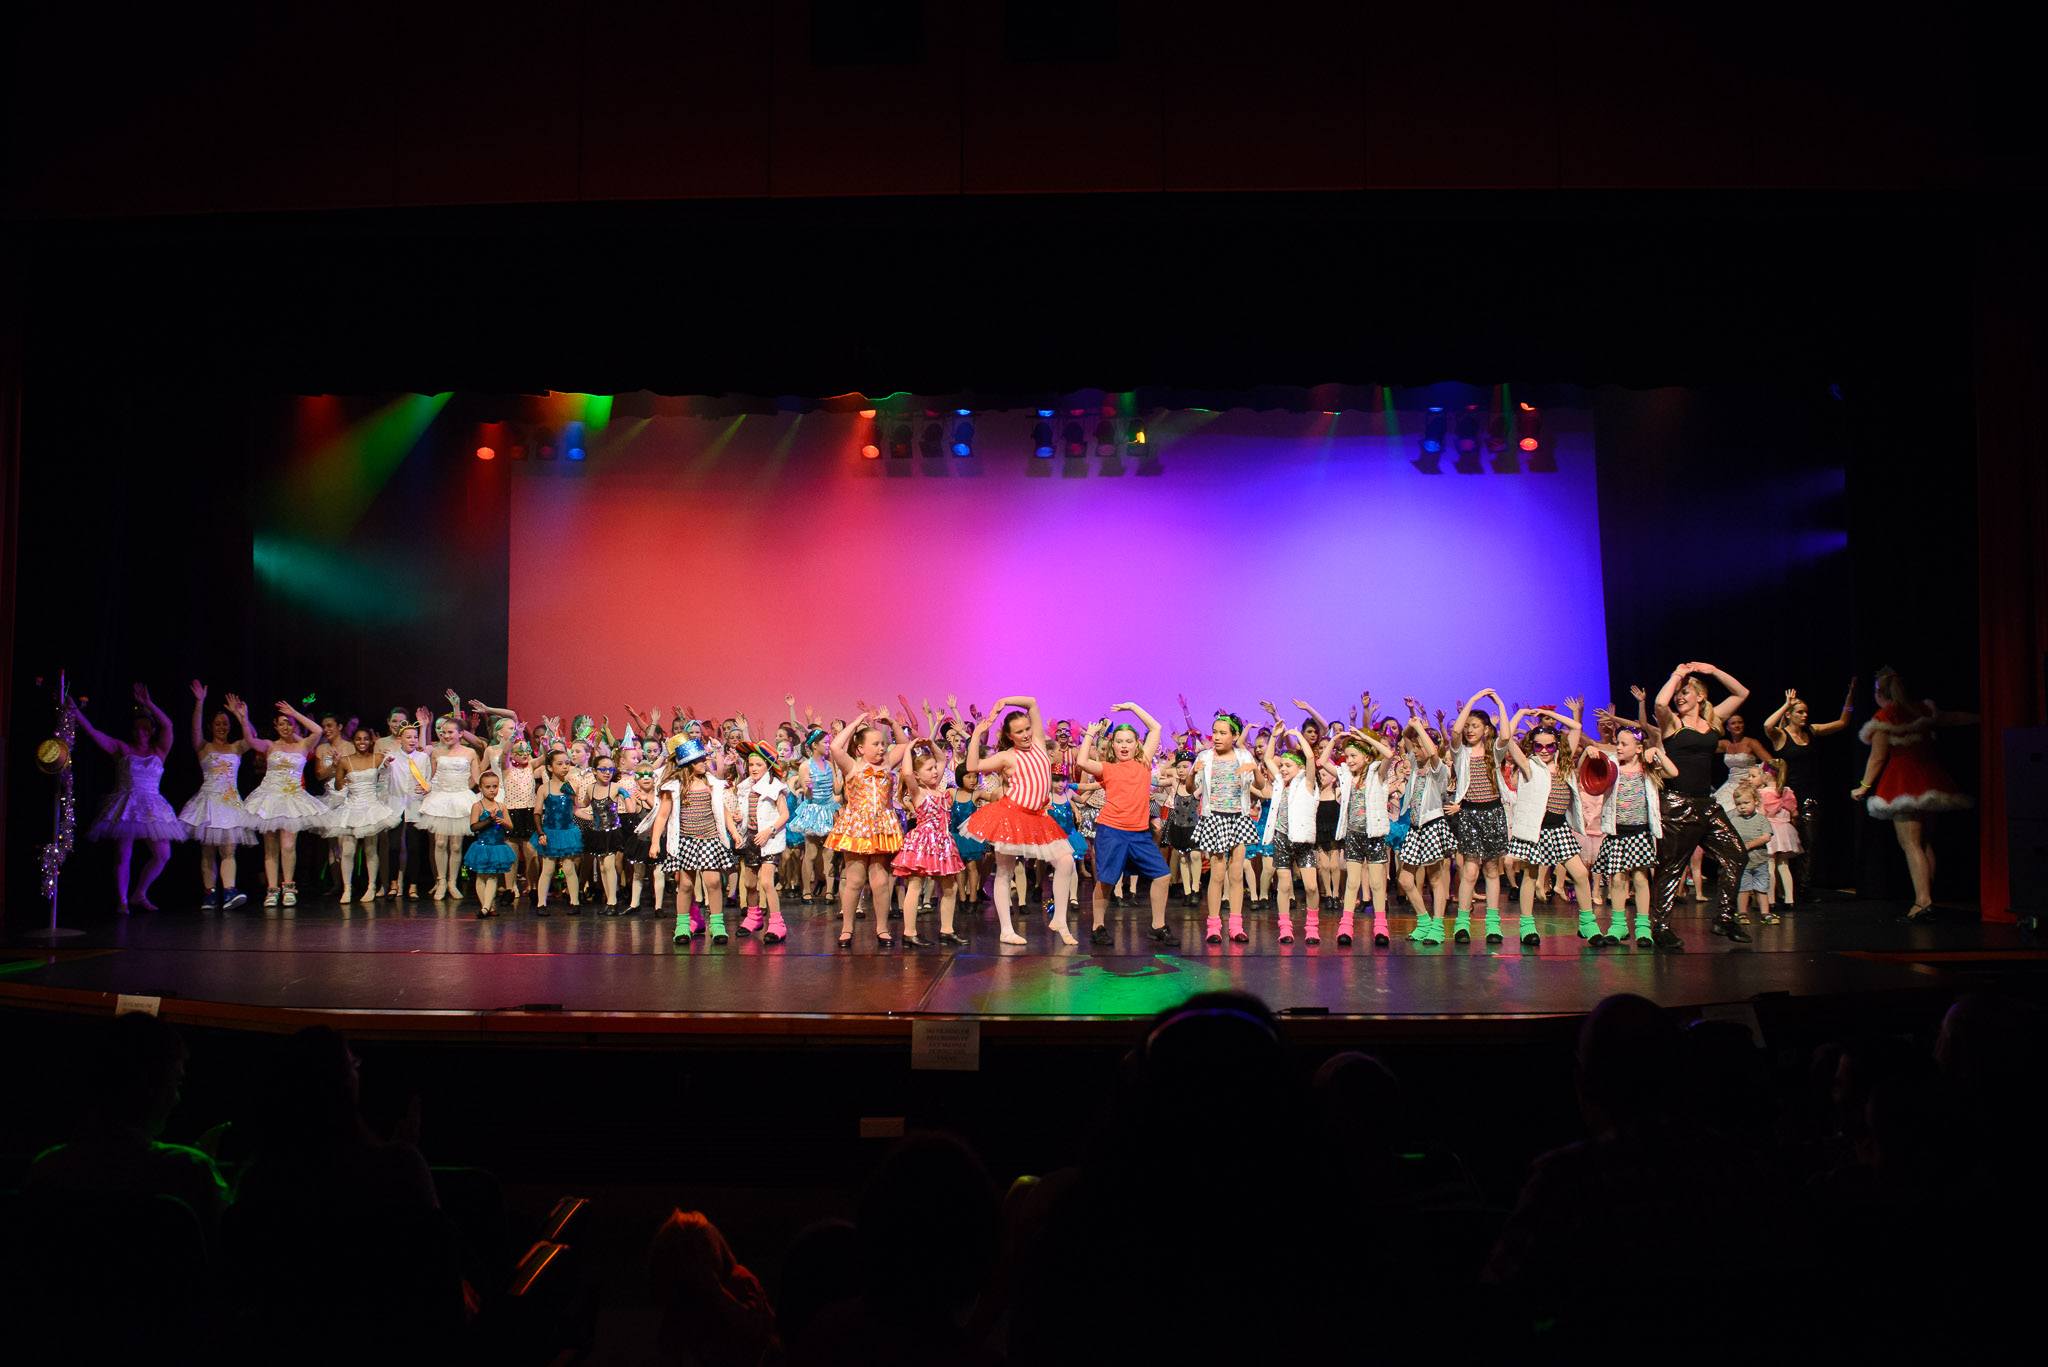 http://www.rc.au.net/dance/concert_2014/finale_part2/images/20141109_1212.jpg